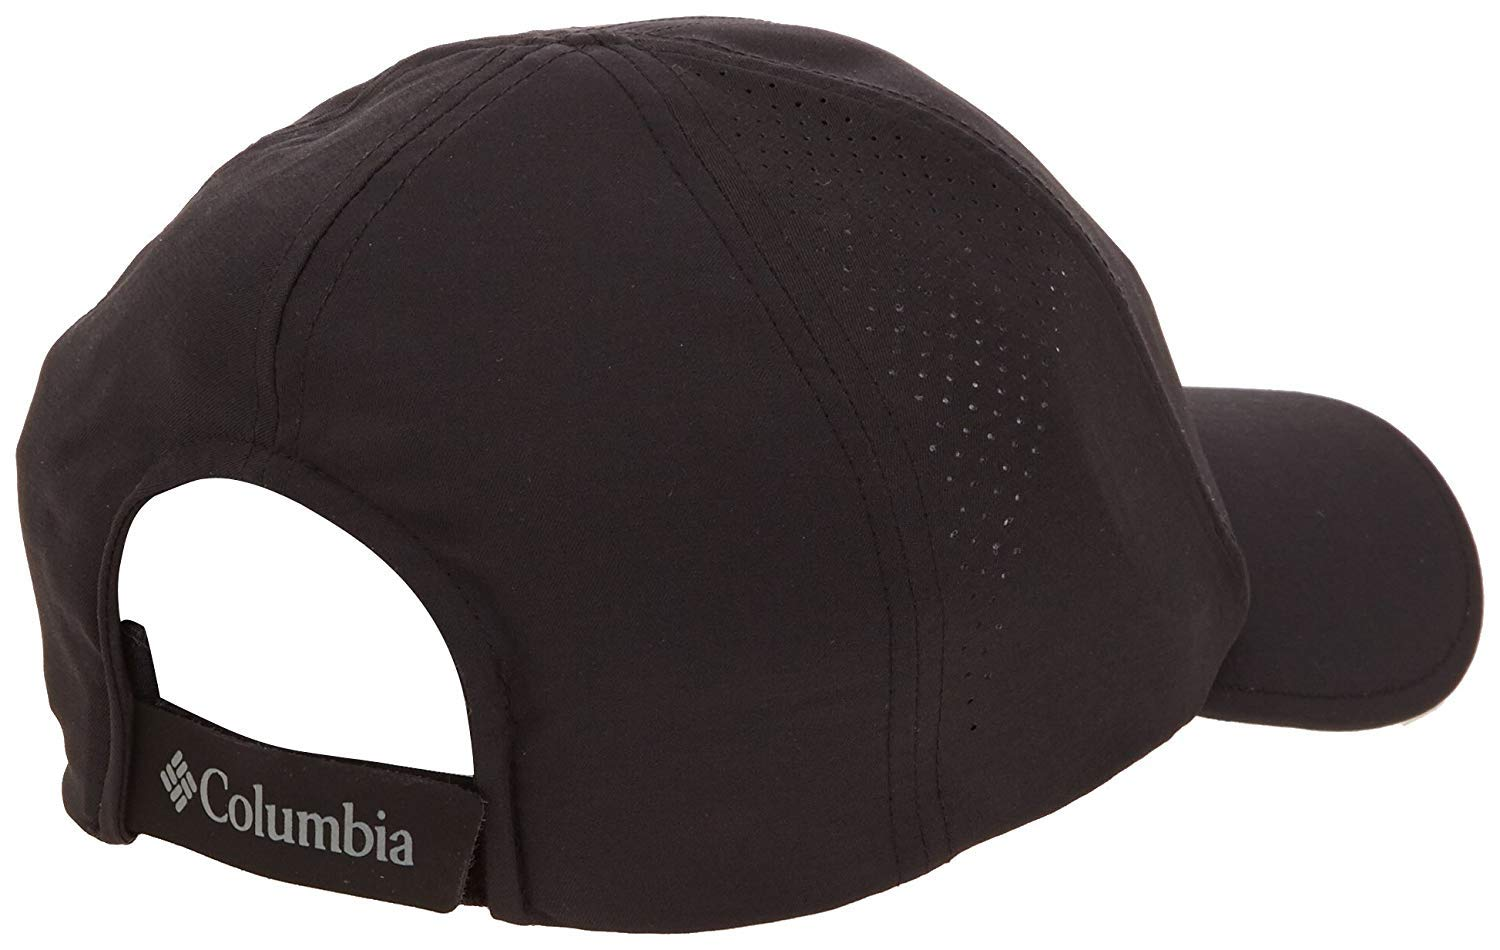 c03a5483e1be4 Columbia Men s Cap